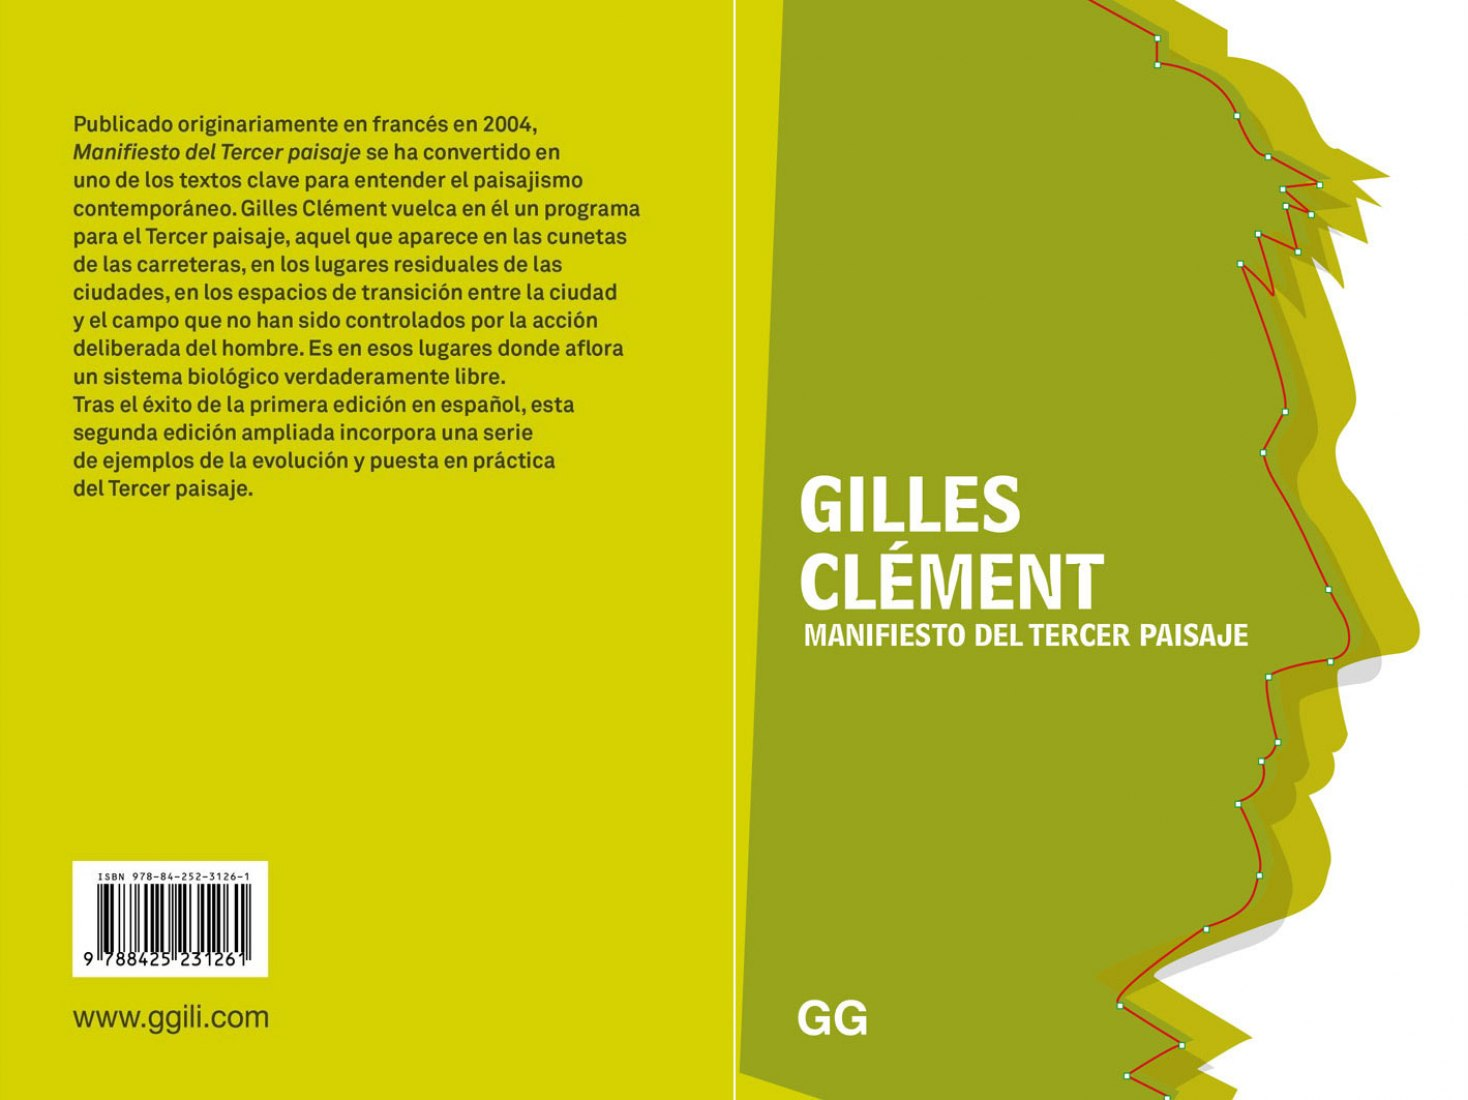 Cover and back cover. Manifiesto del tercer paisaje by Gilles Clément. Courtesy of Ed. GGili